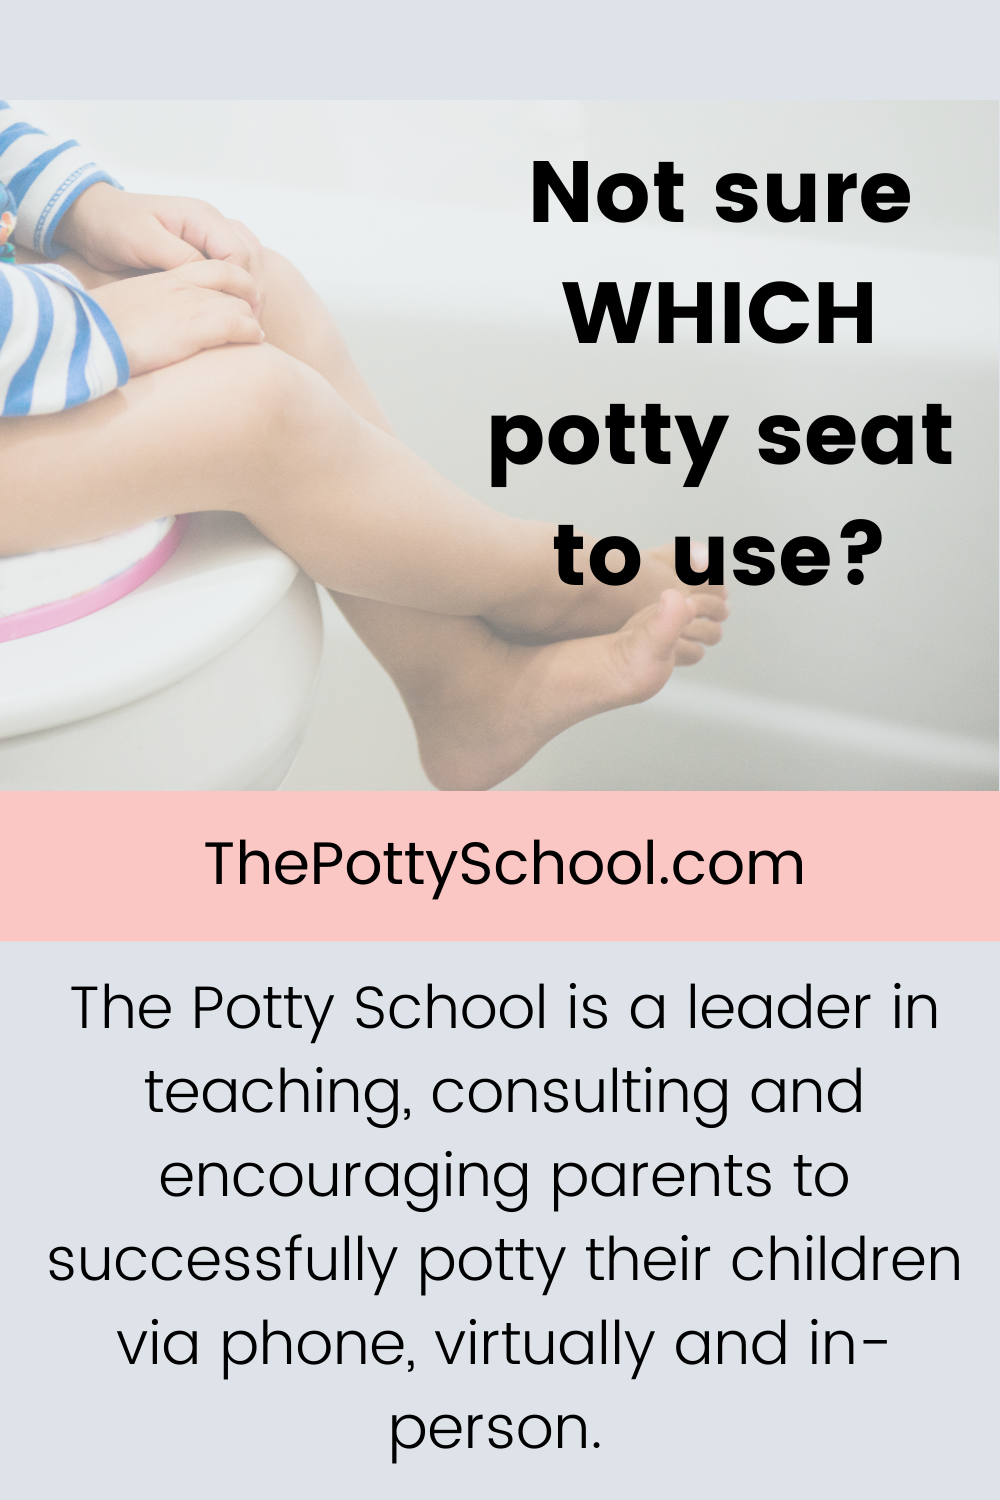 Not sure which potty seat to use? The Potty School potty training